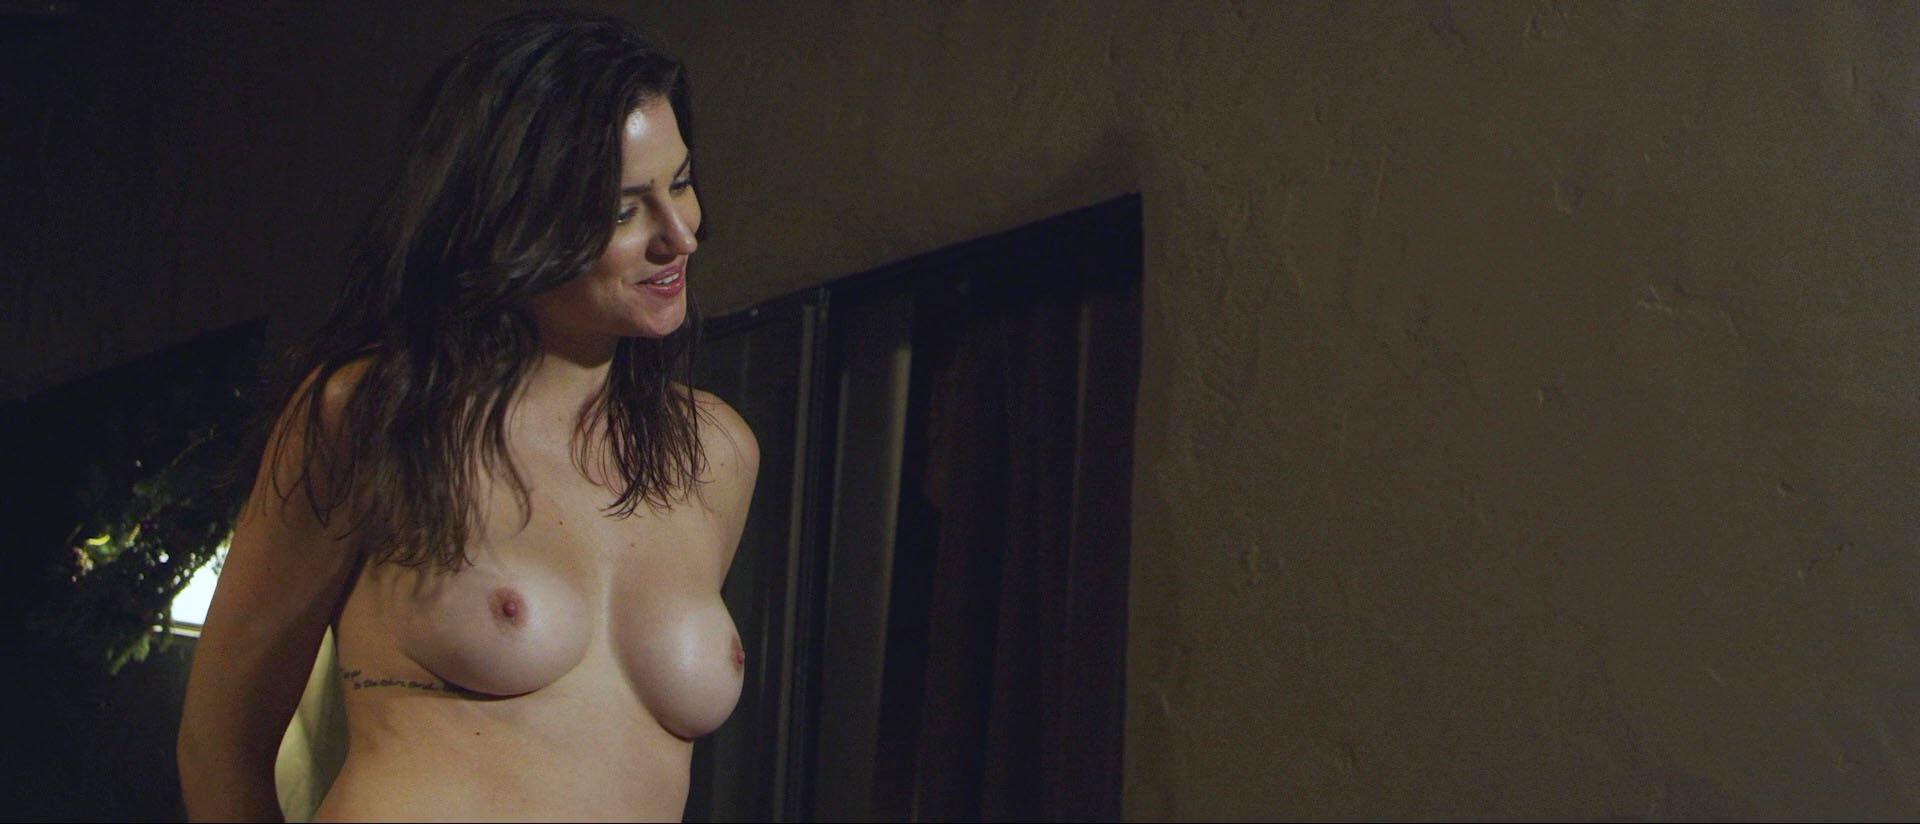 Amelia Brantley nude - Krampus Unleashed (2016)